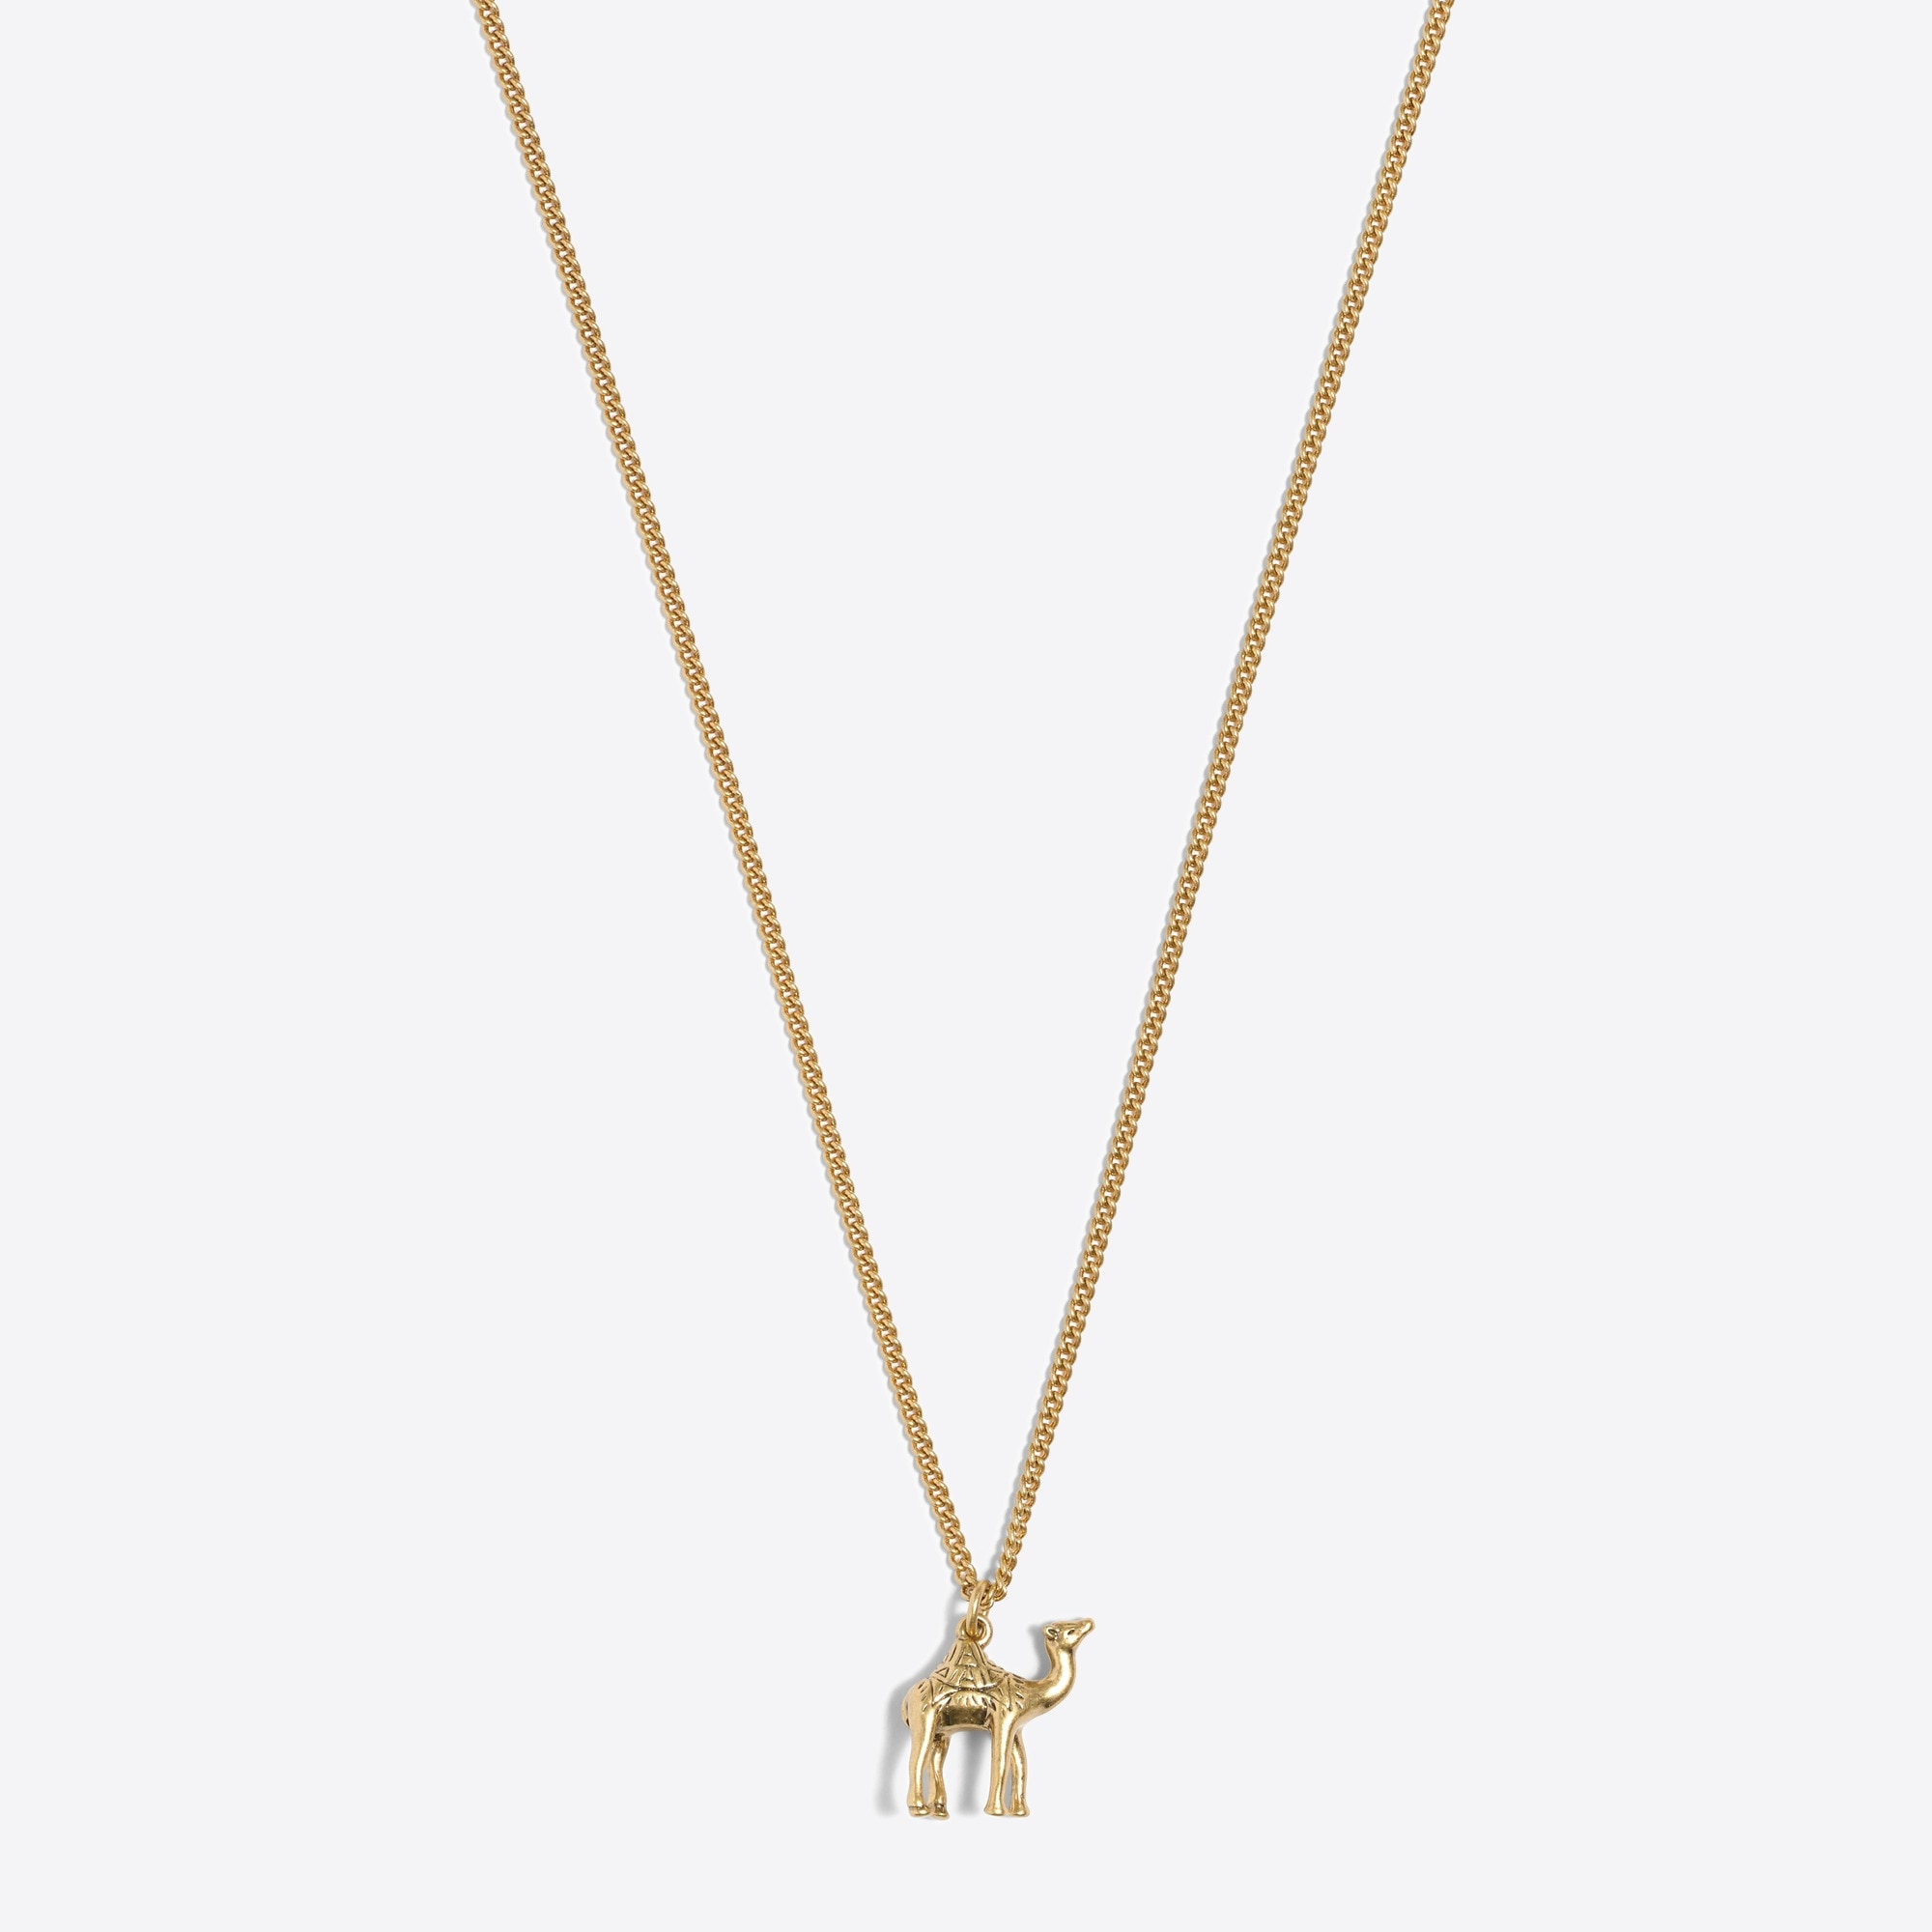 camel pendant necklace : factorywomen necklaces